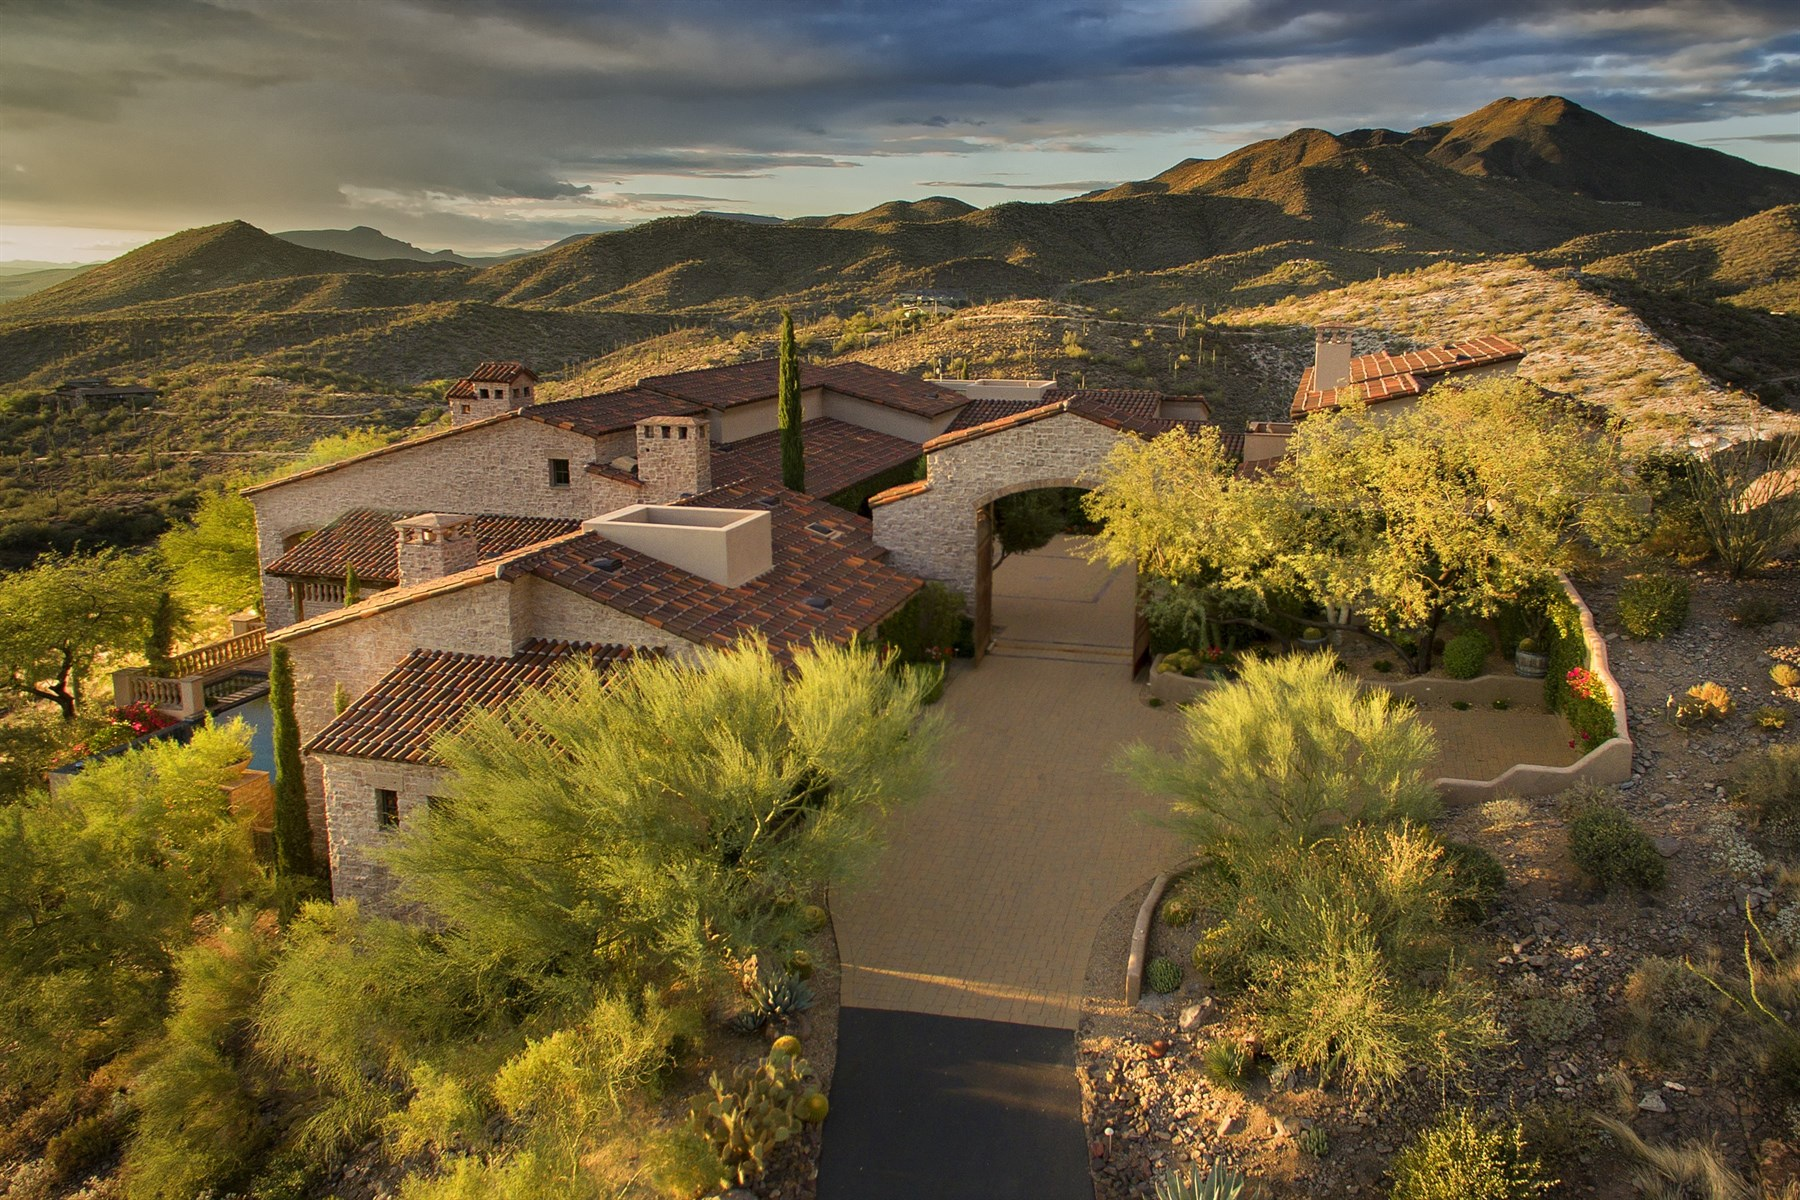 Einfamilienhaus für Verkauf beim Private gated 6+ acre estate perched on a hillside in Carefree Ranch 39429 N Tom Morris Rd Scottsdale, Arizona, 85262 Vereinigte Staaten